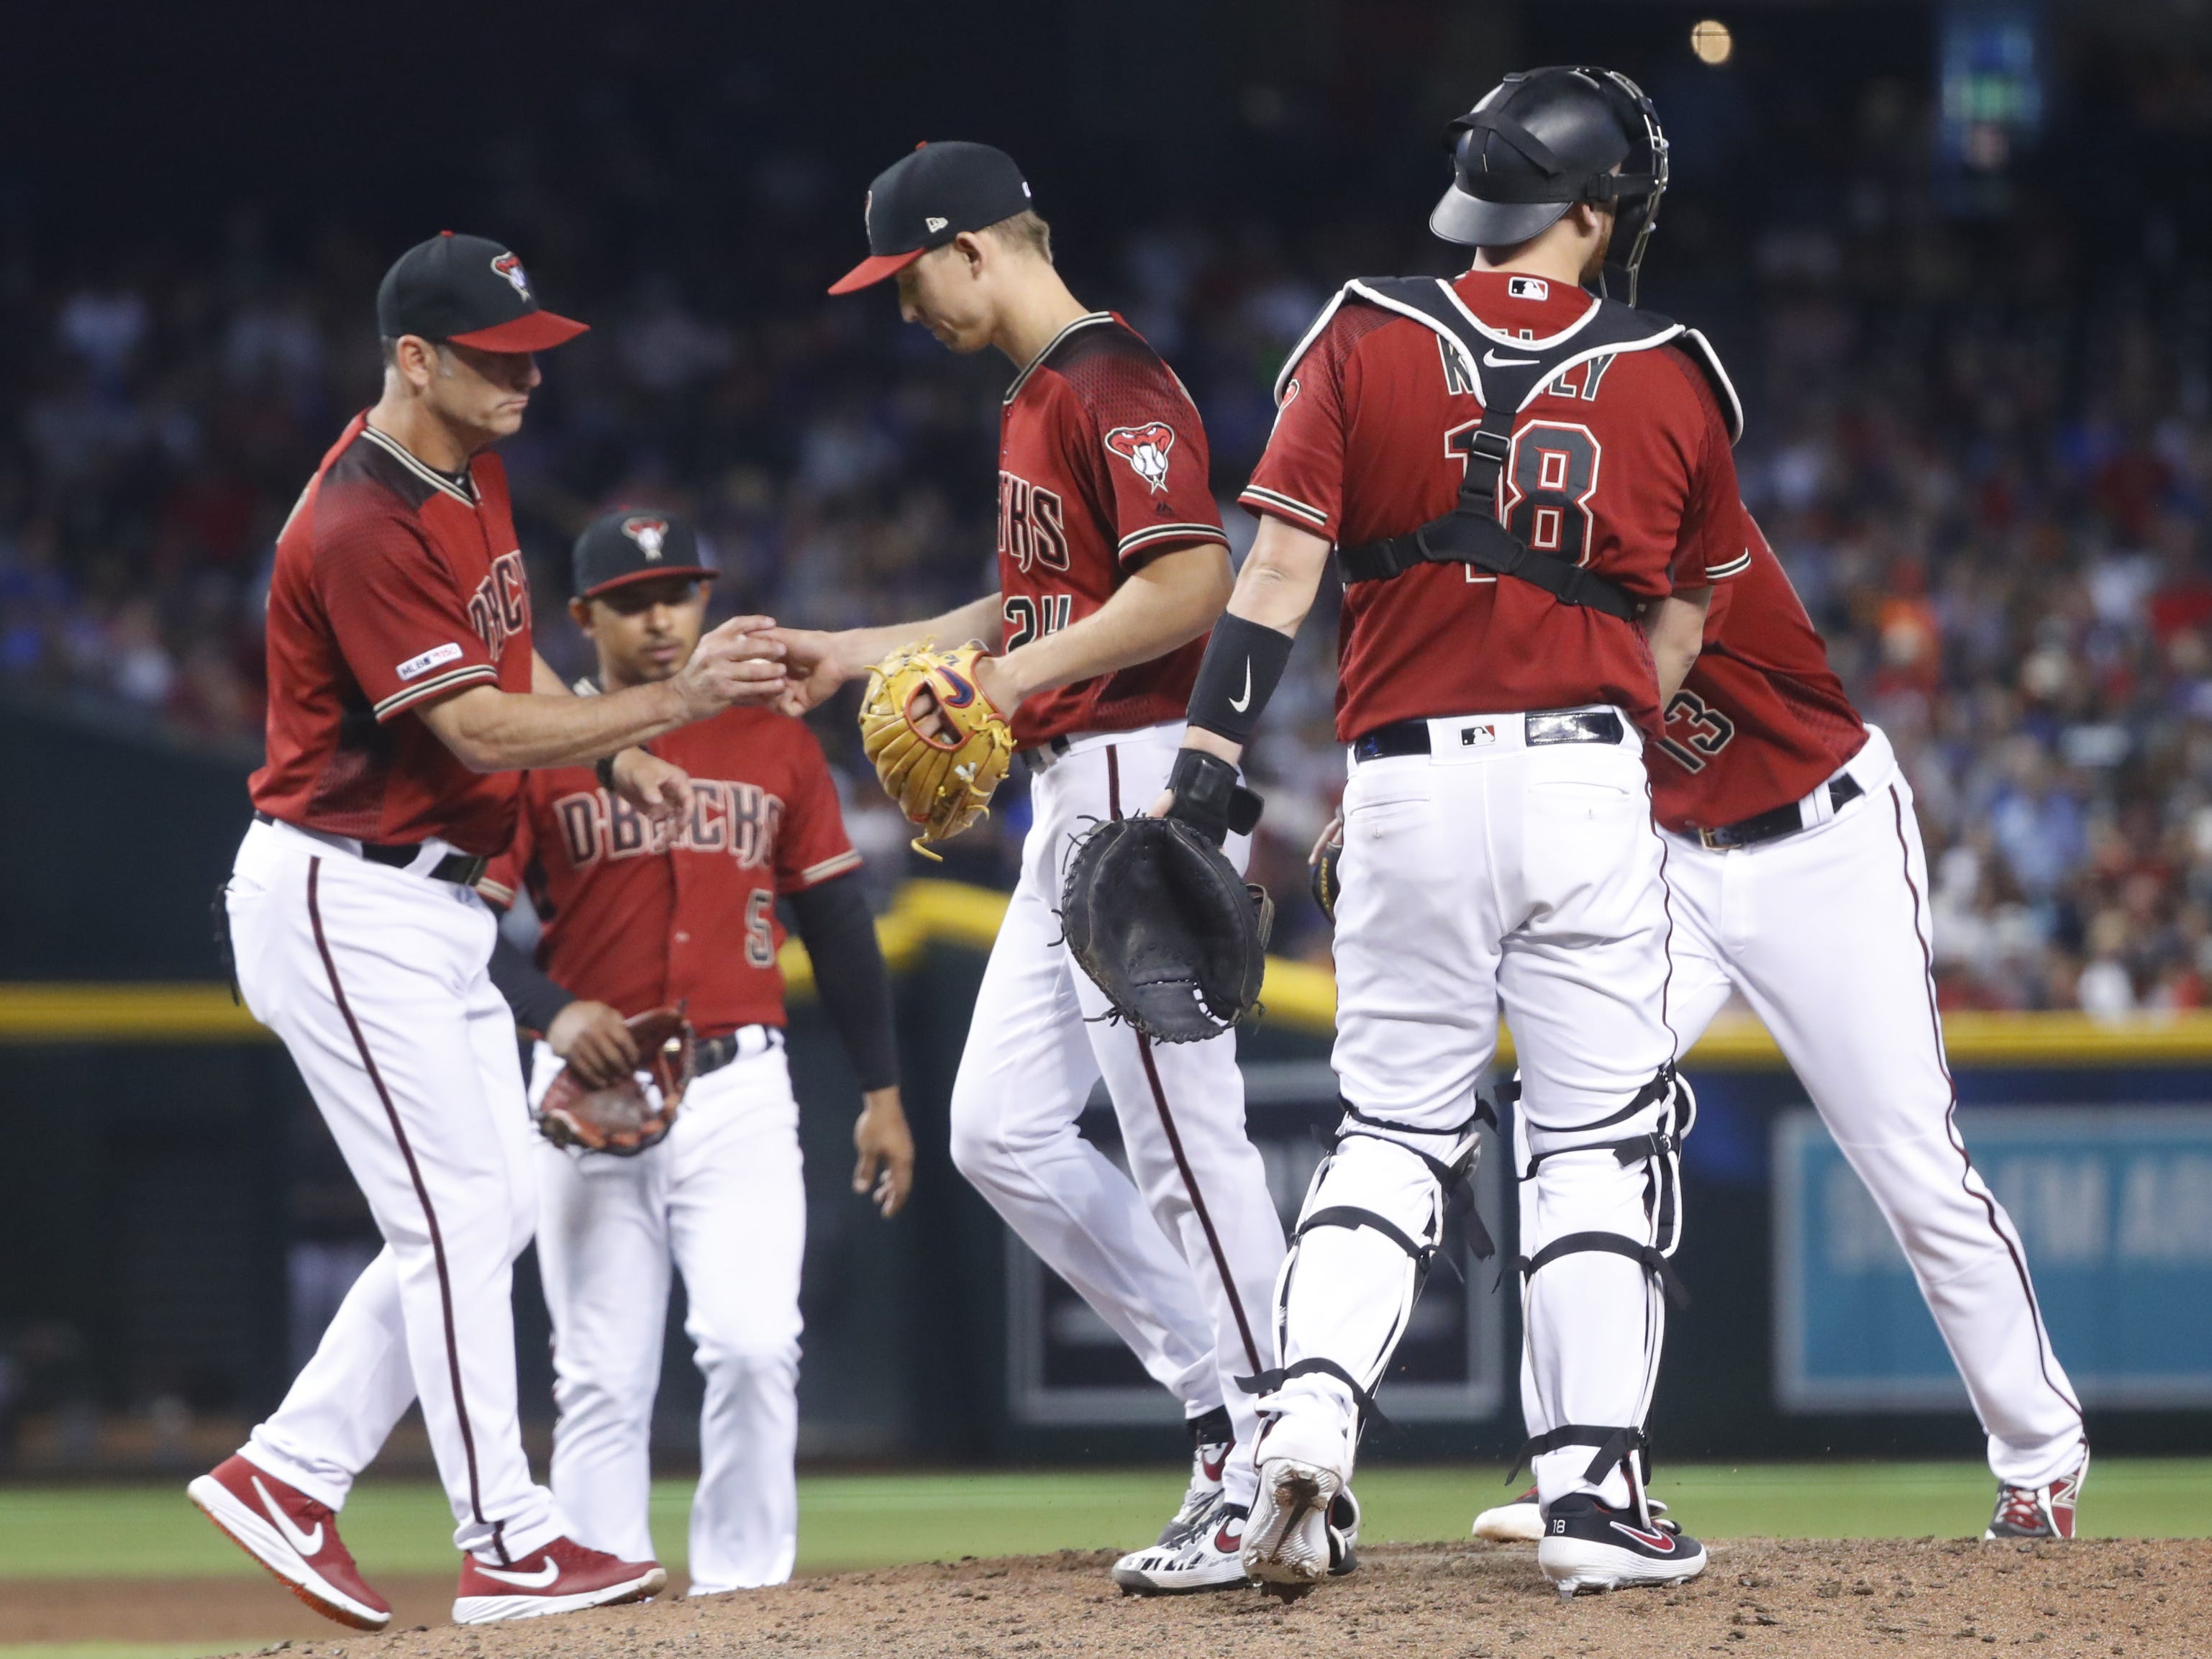 Diamondbacks' manager Torey Lovullo (17) pulls Luke Weaver (24) from the mound in a game against the Cubs at Chase Field in Phoenix, Ariz. on April 28, 2019.